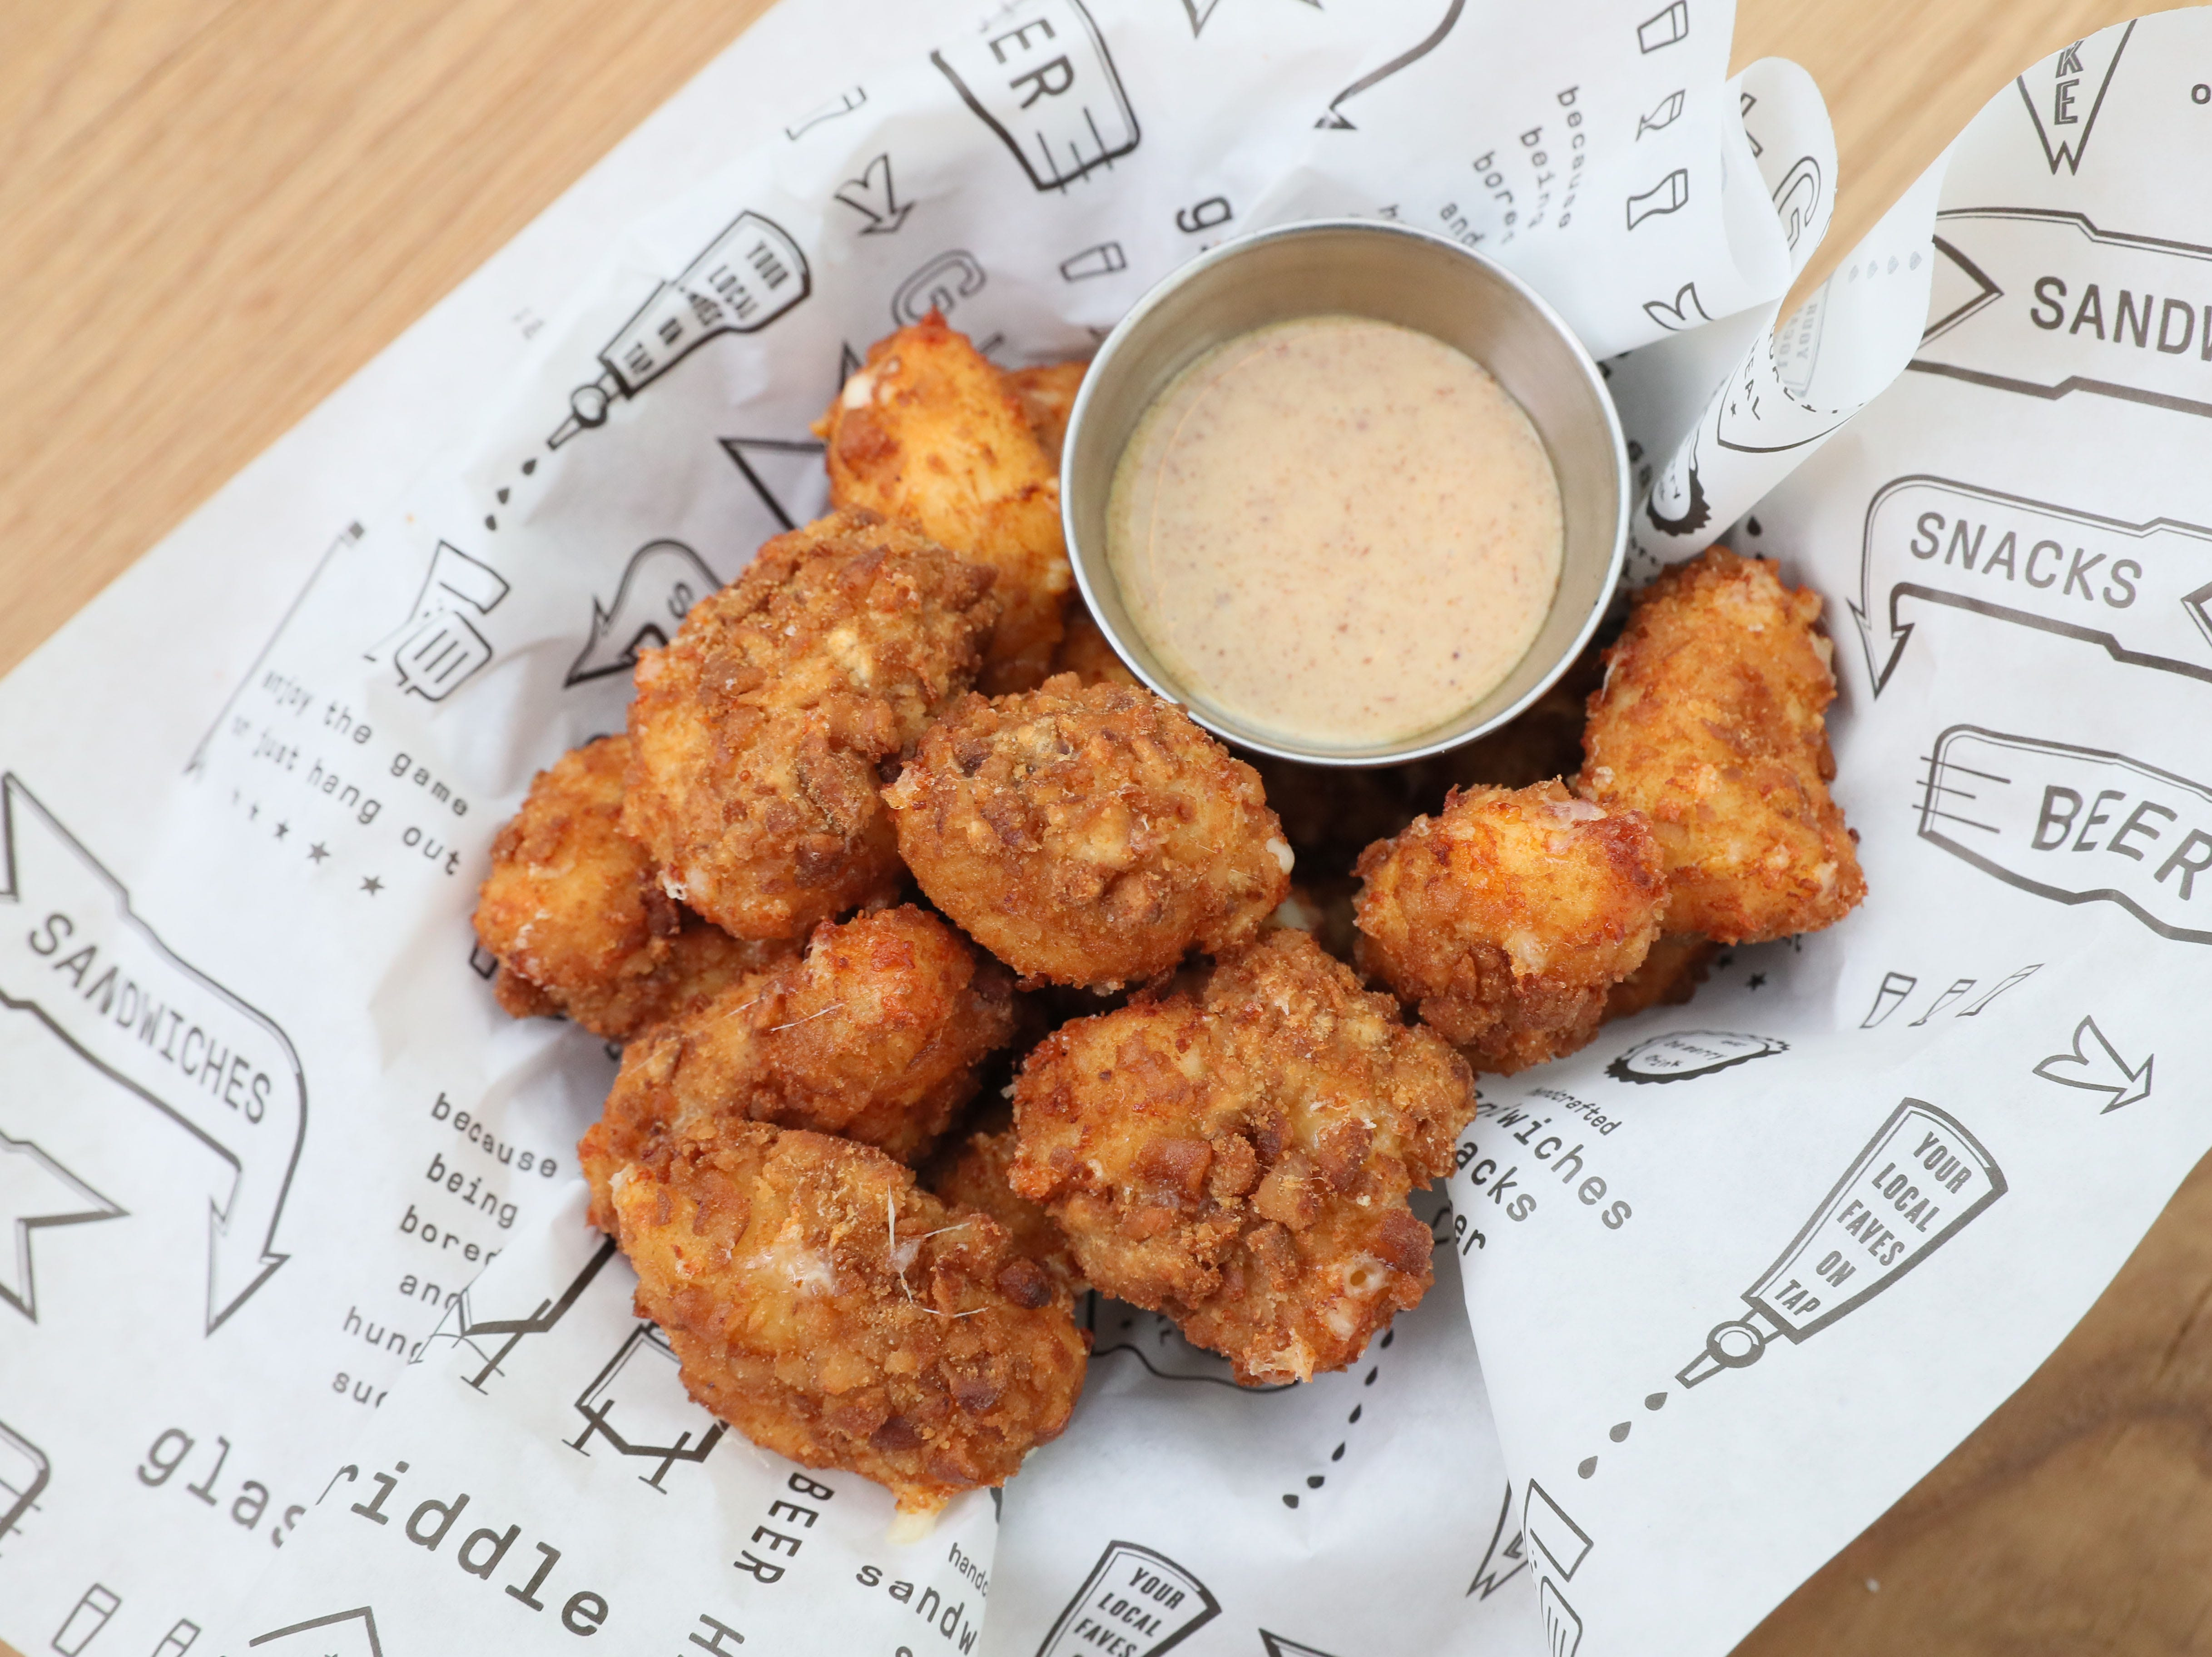 Crushed pretzels in the breading help make cheese curds especially crunchy at Glass + Griddle.